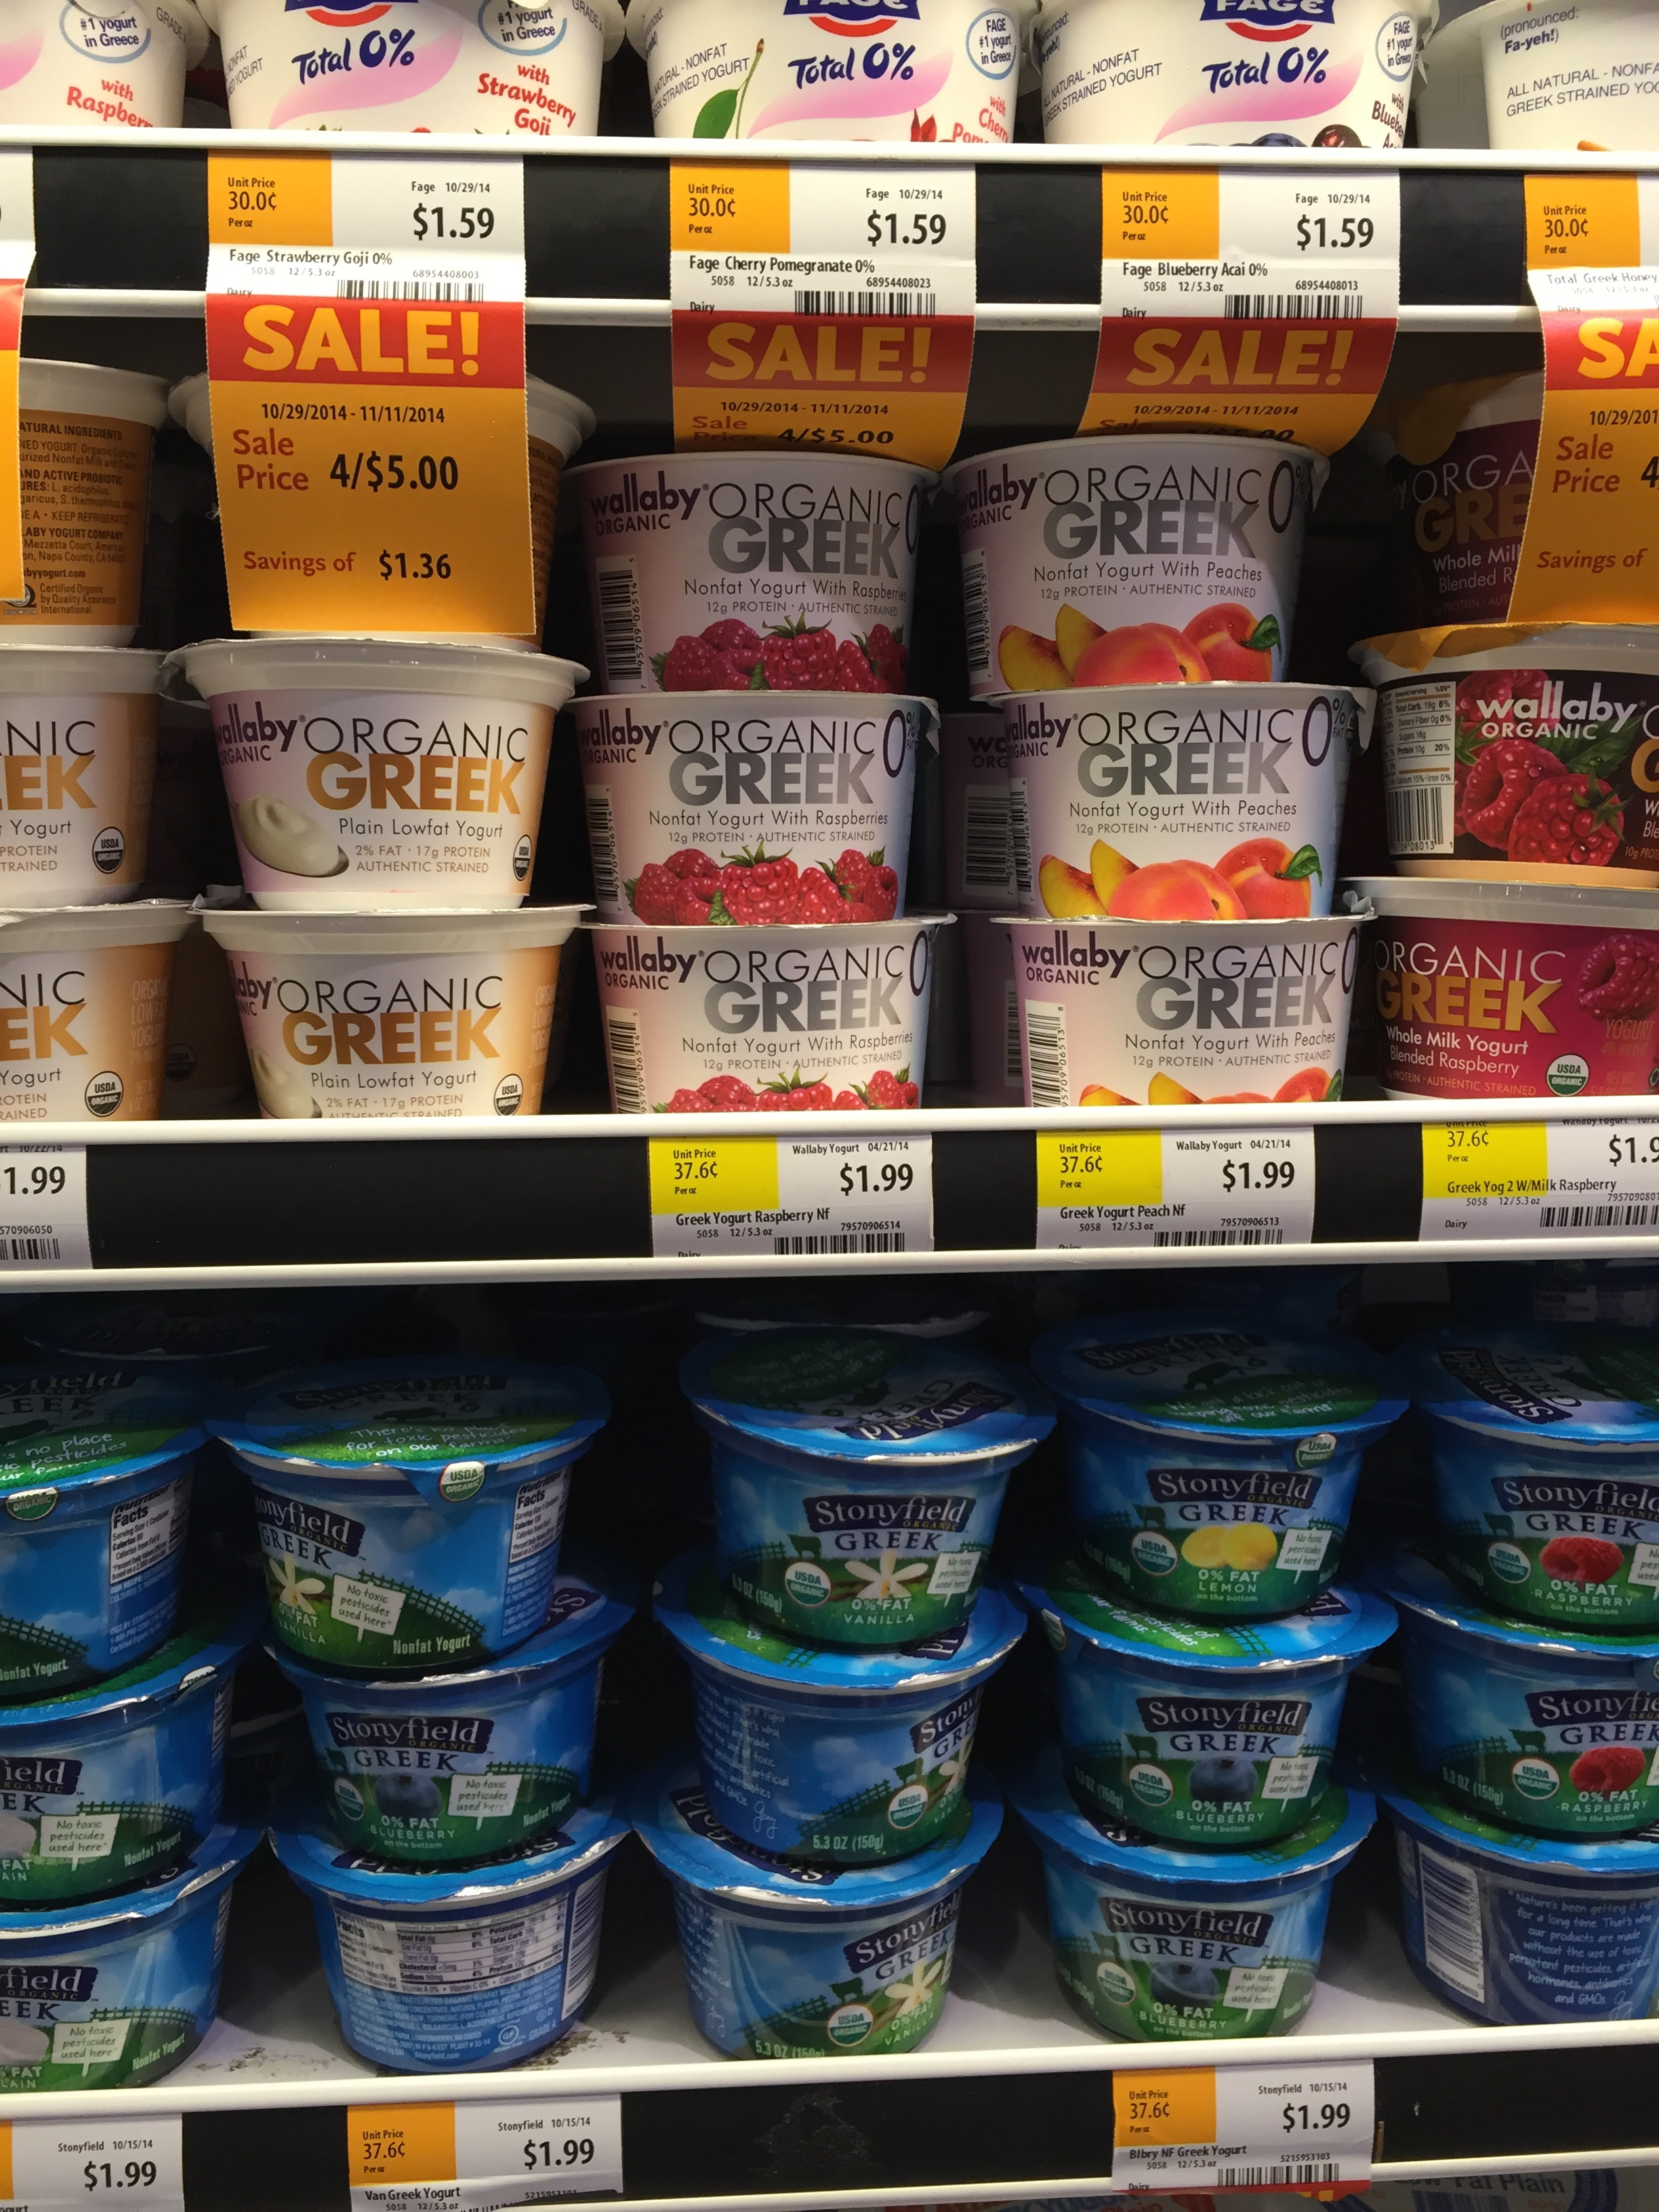 greek yogurt: extensively processed and marketed to appear natural